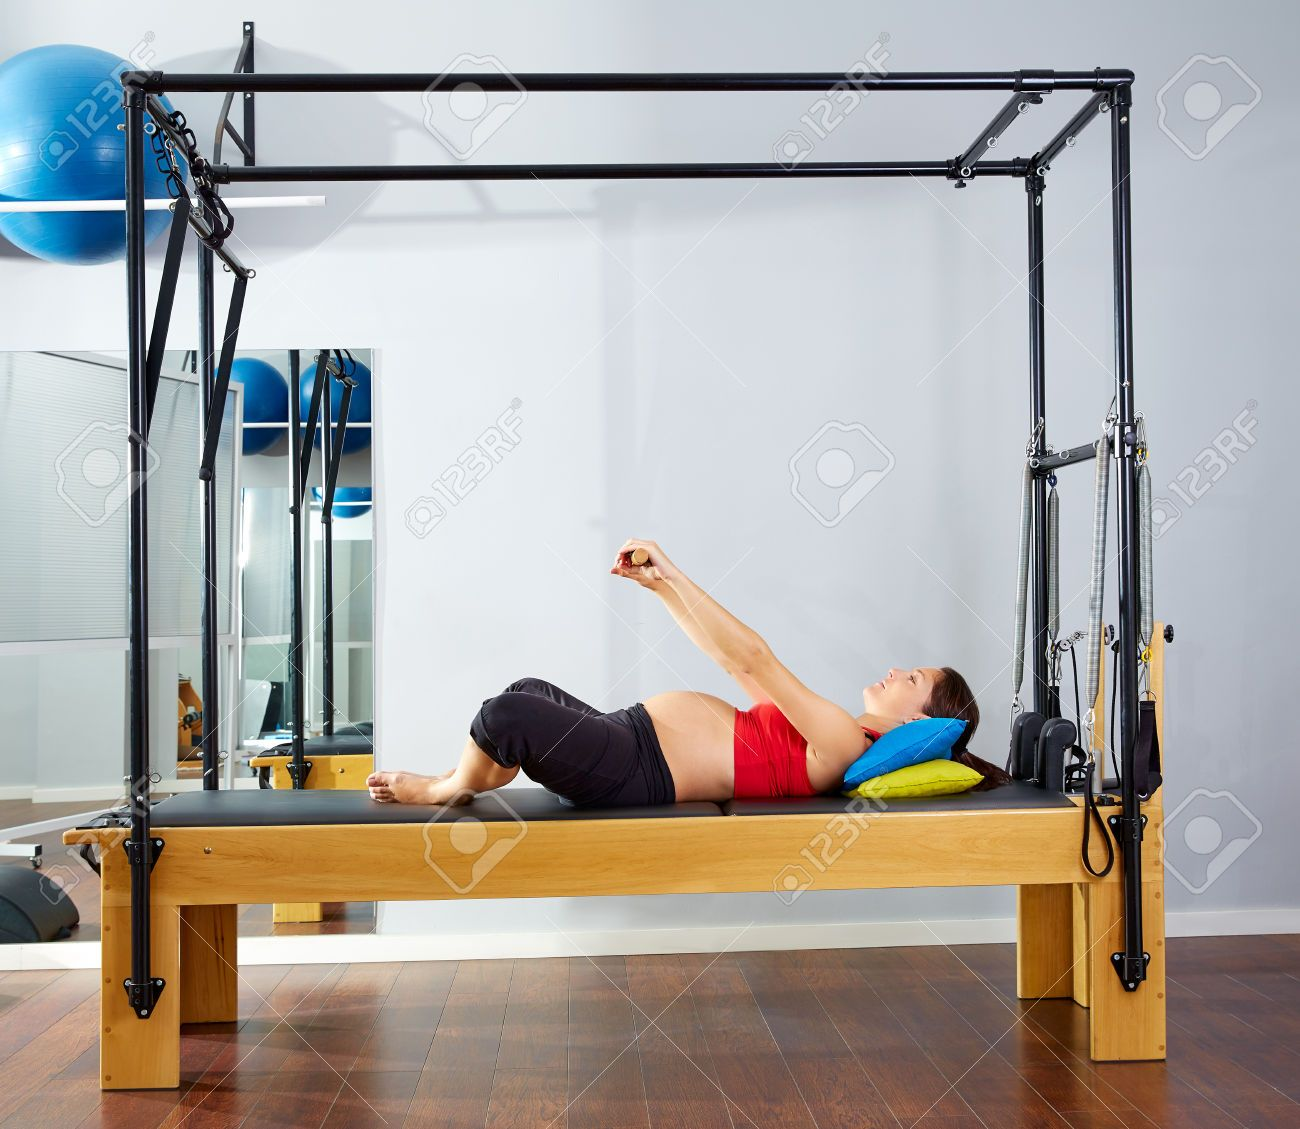 44274387-pregnant-woman-pilates-reformer-cadillac-exercise-workout-at-gym-Stock-Photo.jpg (1300×1129)